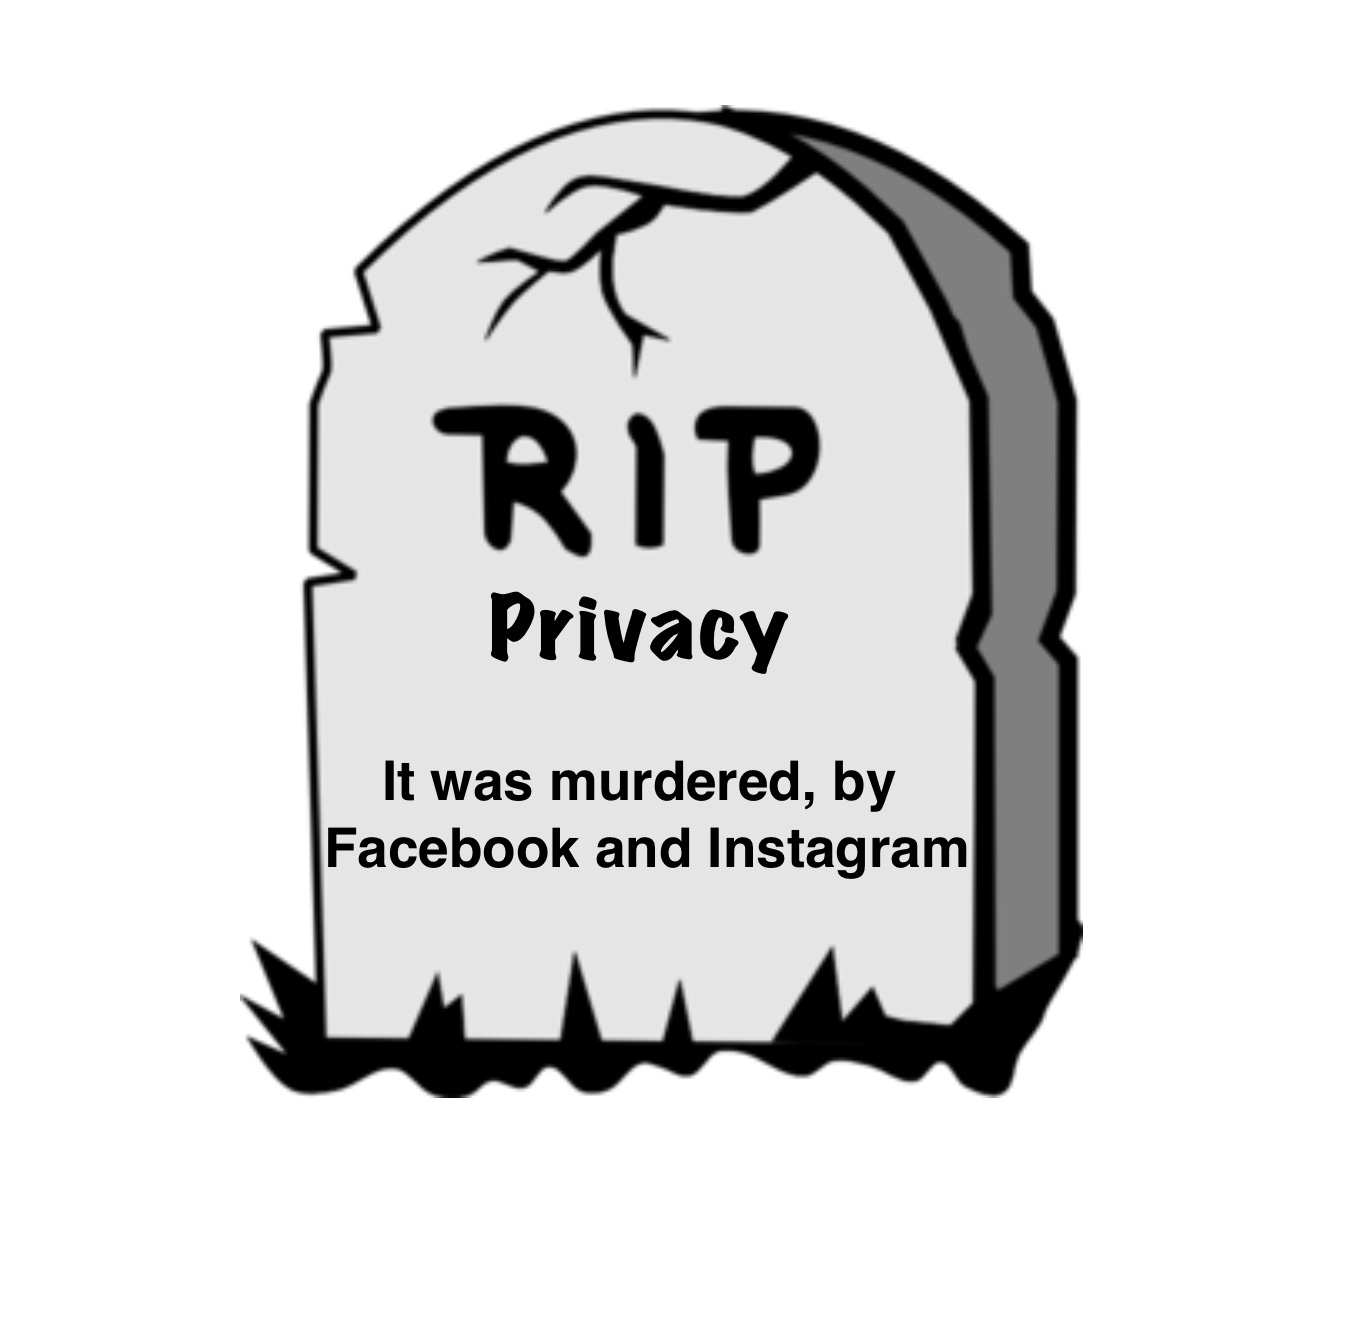 Rest in peace, privacy - meme